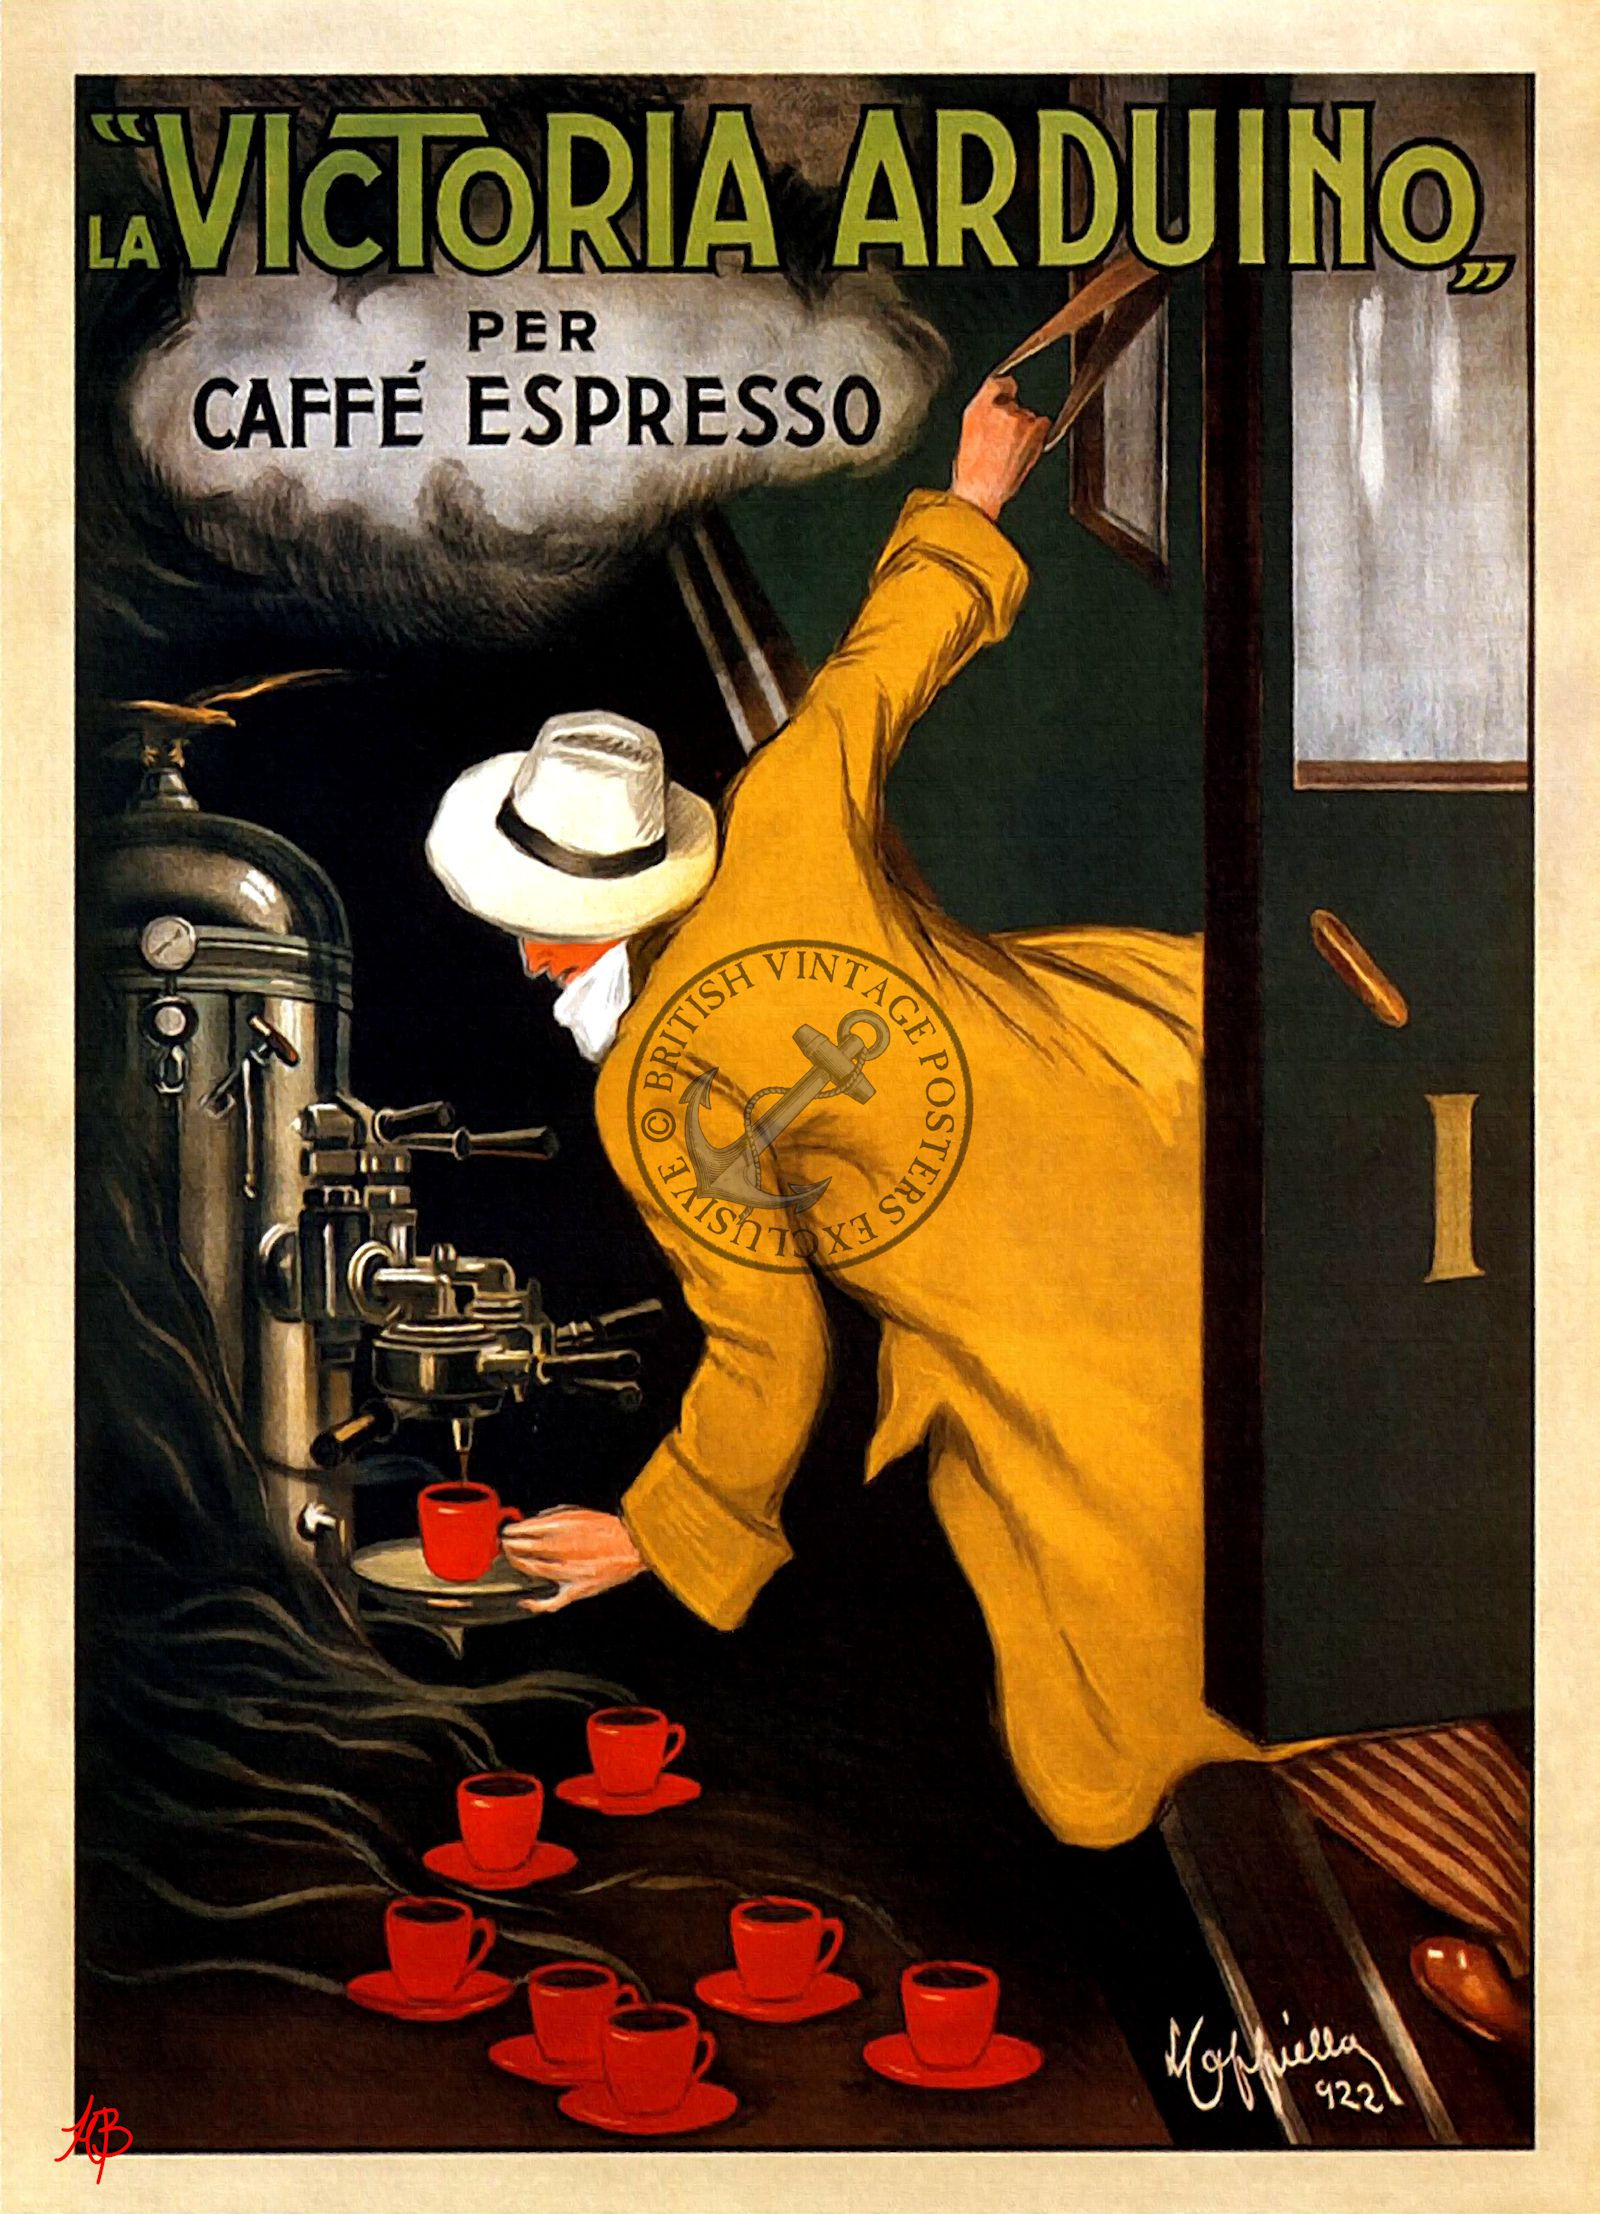 Cafe Martin Reproduction poster Wall art. Vintage drink advert